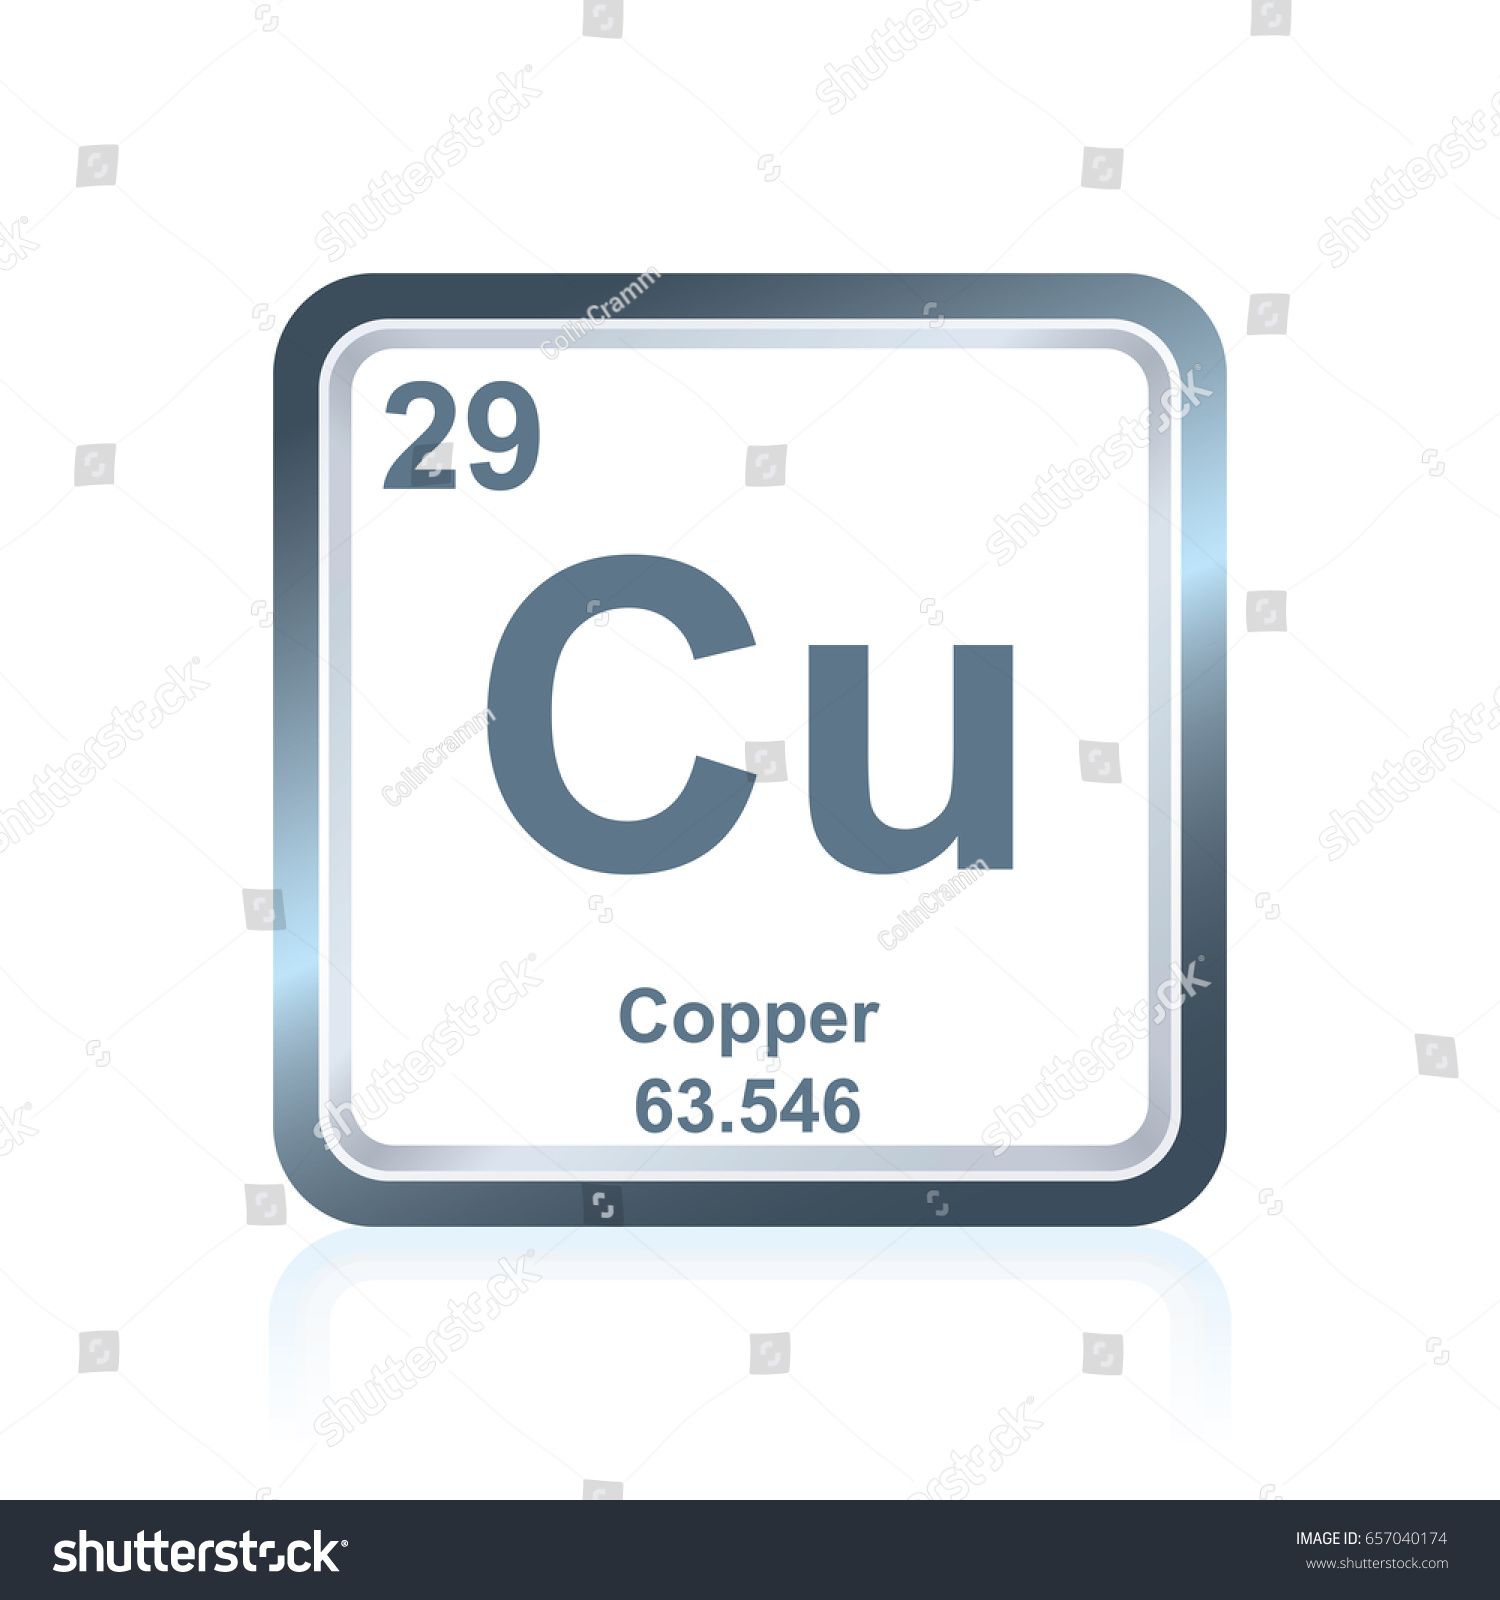 Cu symbol periodic table image collections periodic table images symbol for copper on periodic table images periodic table images periodic table symbol for copper images gamestrikefo Image collections